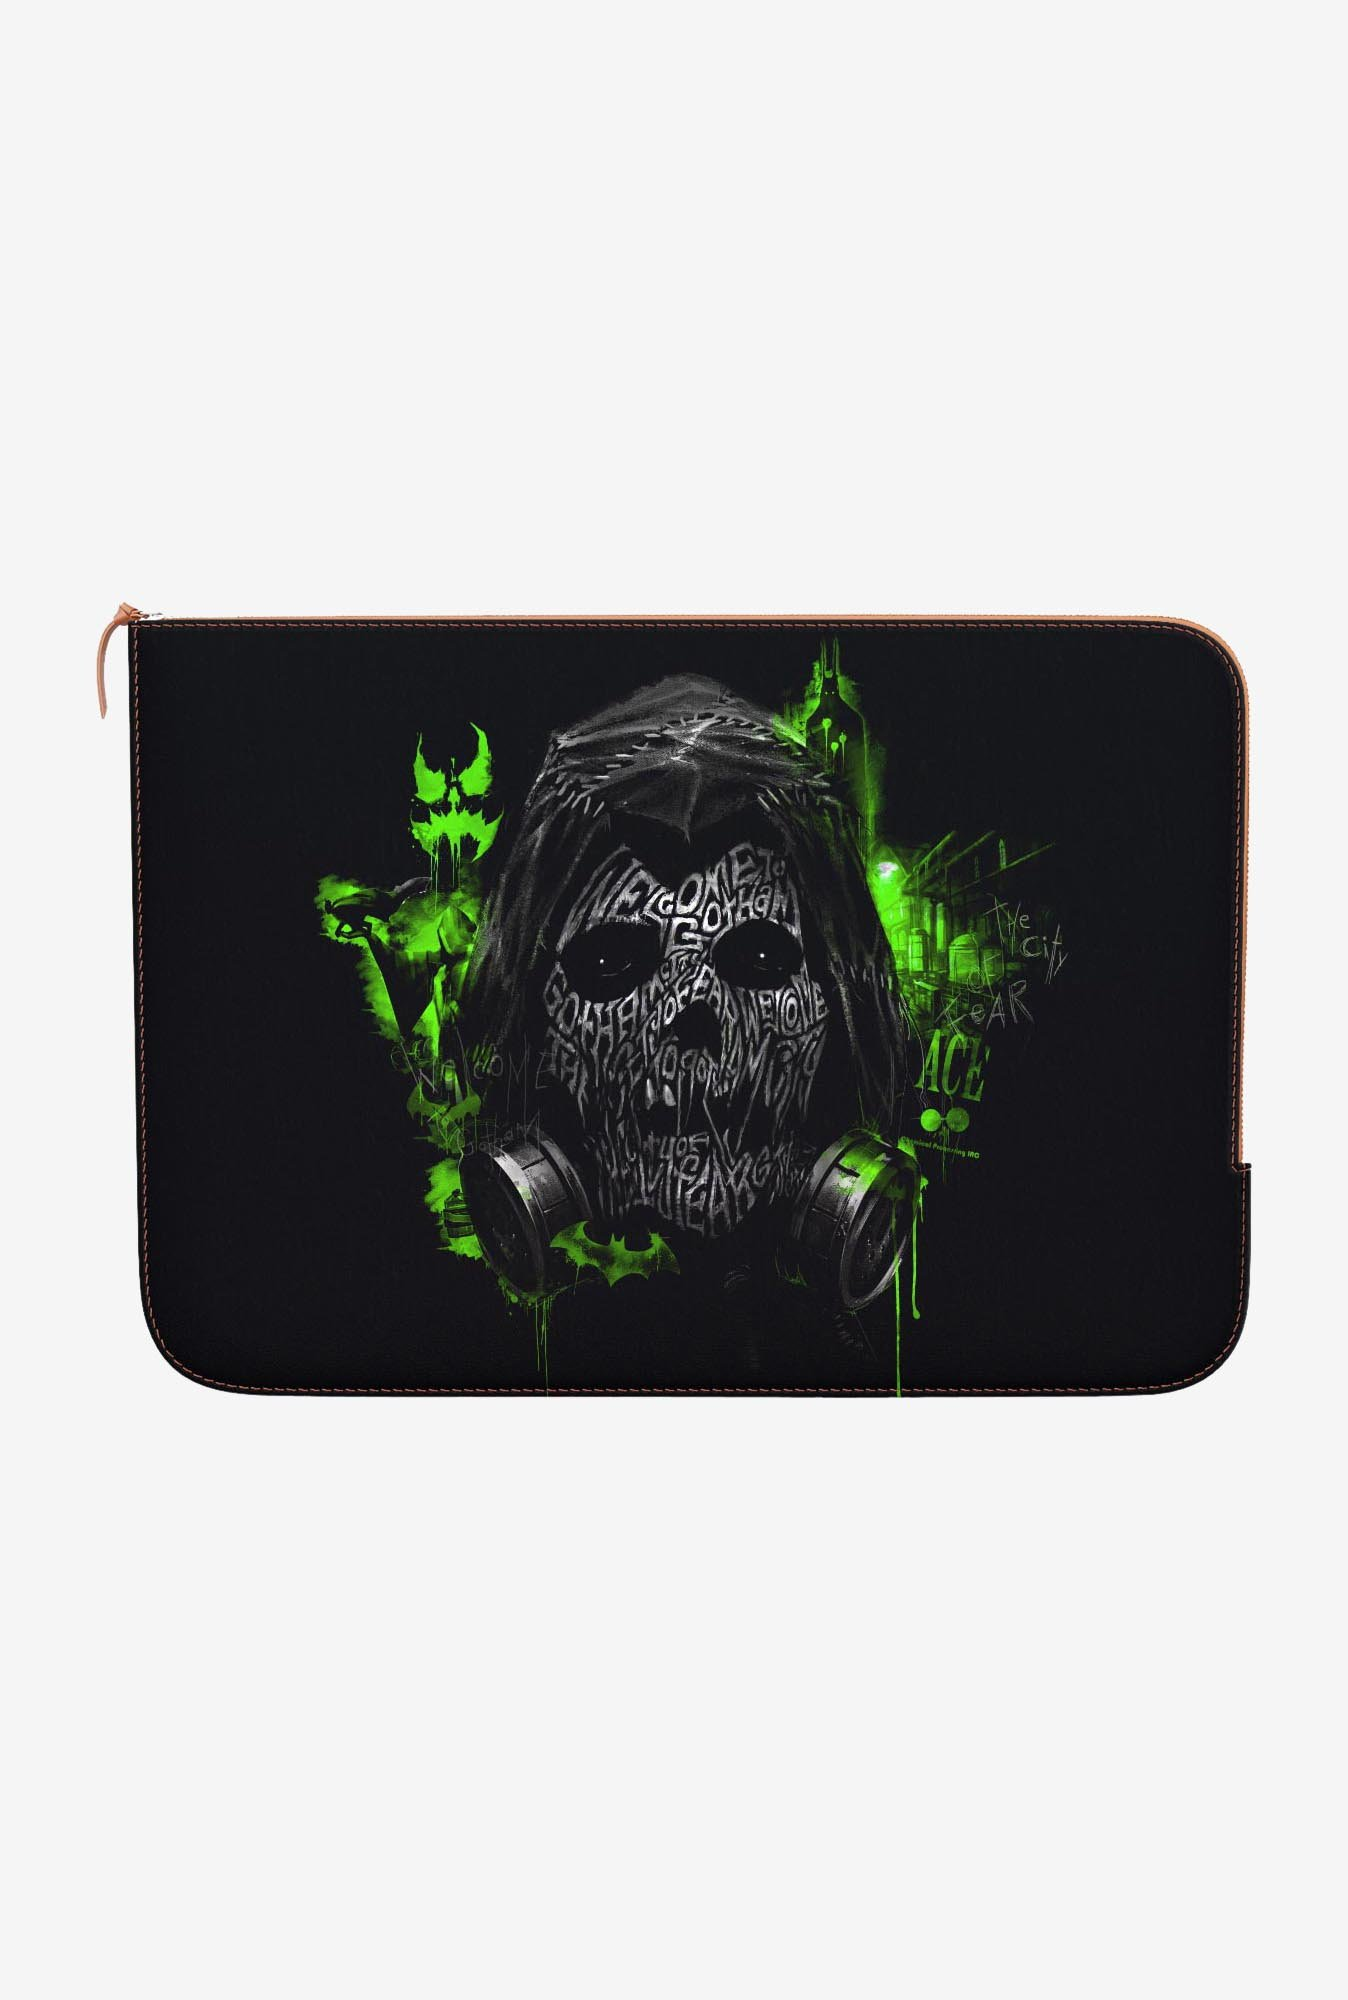 DailyObjects Scarecrow Green MacBook 12 Zippered Sleeve